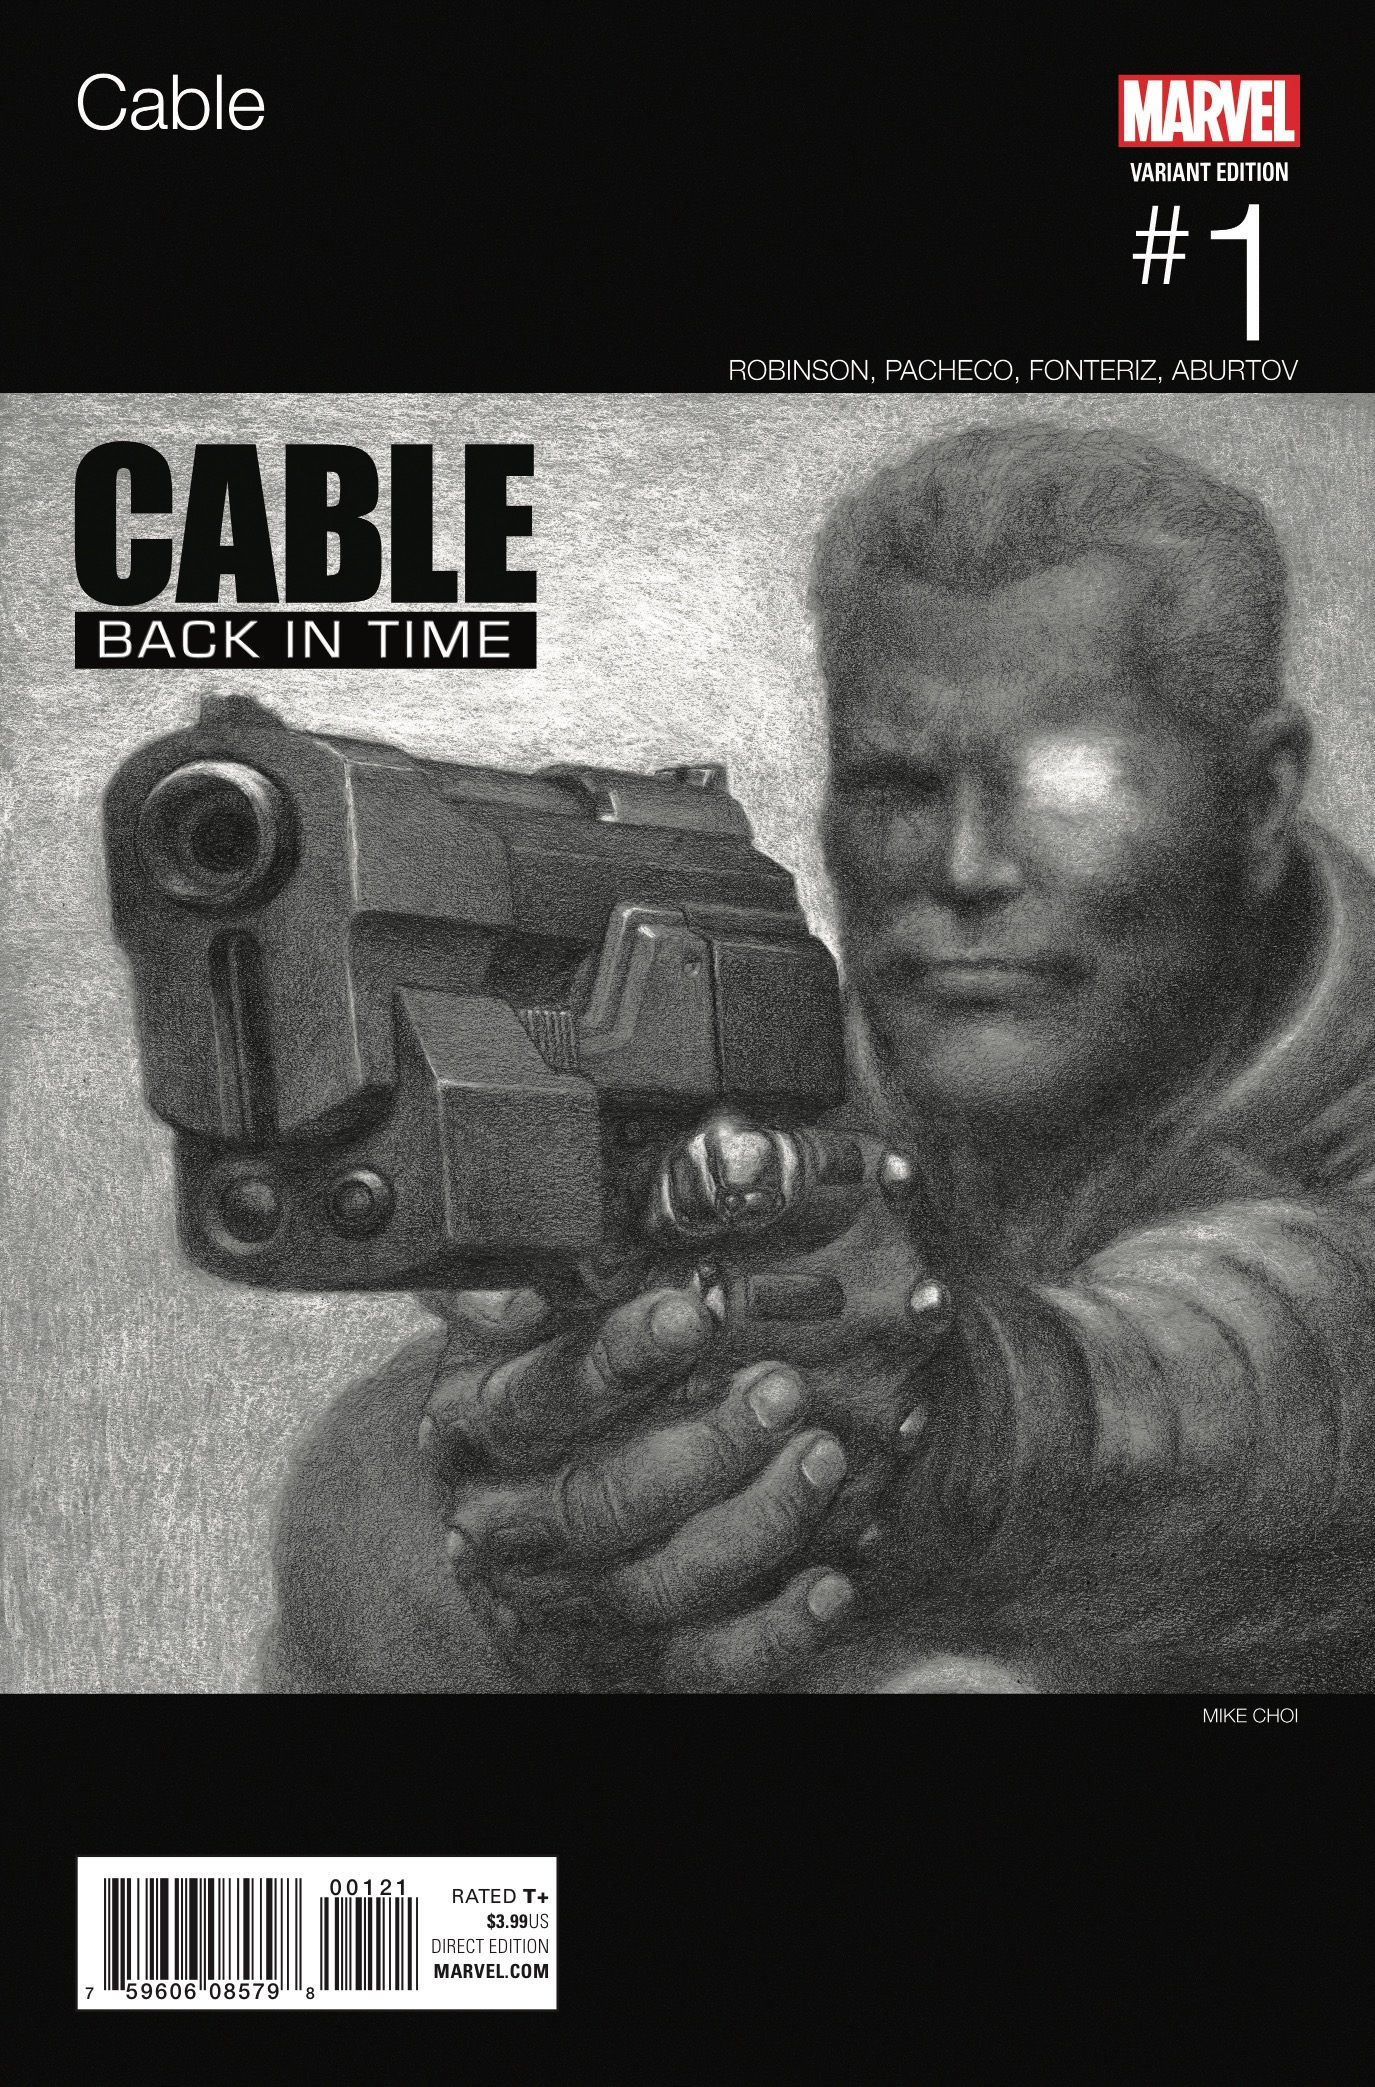 WALK SOFTLY...AND CARRY A BIG GUN! CABLE sees the mighty mutant return on a brand-new mission…with all of time in the balance! When Cable picks up the trail of a threat in the timestream, he sets off on a high-speed, history-spanning chase to save reality as we know it. From prehistory to modern day, whether it's a six-gun duel at high noon or a high-tech sword fight in an ancient land, Cable is the only man who can keep history from unraveling!